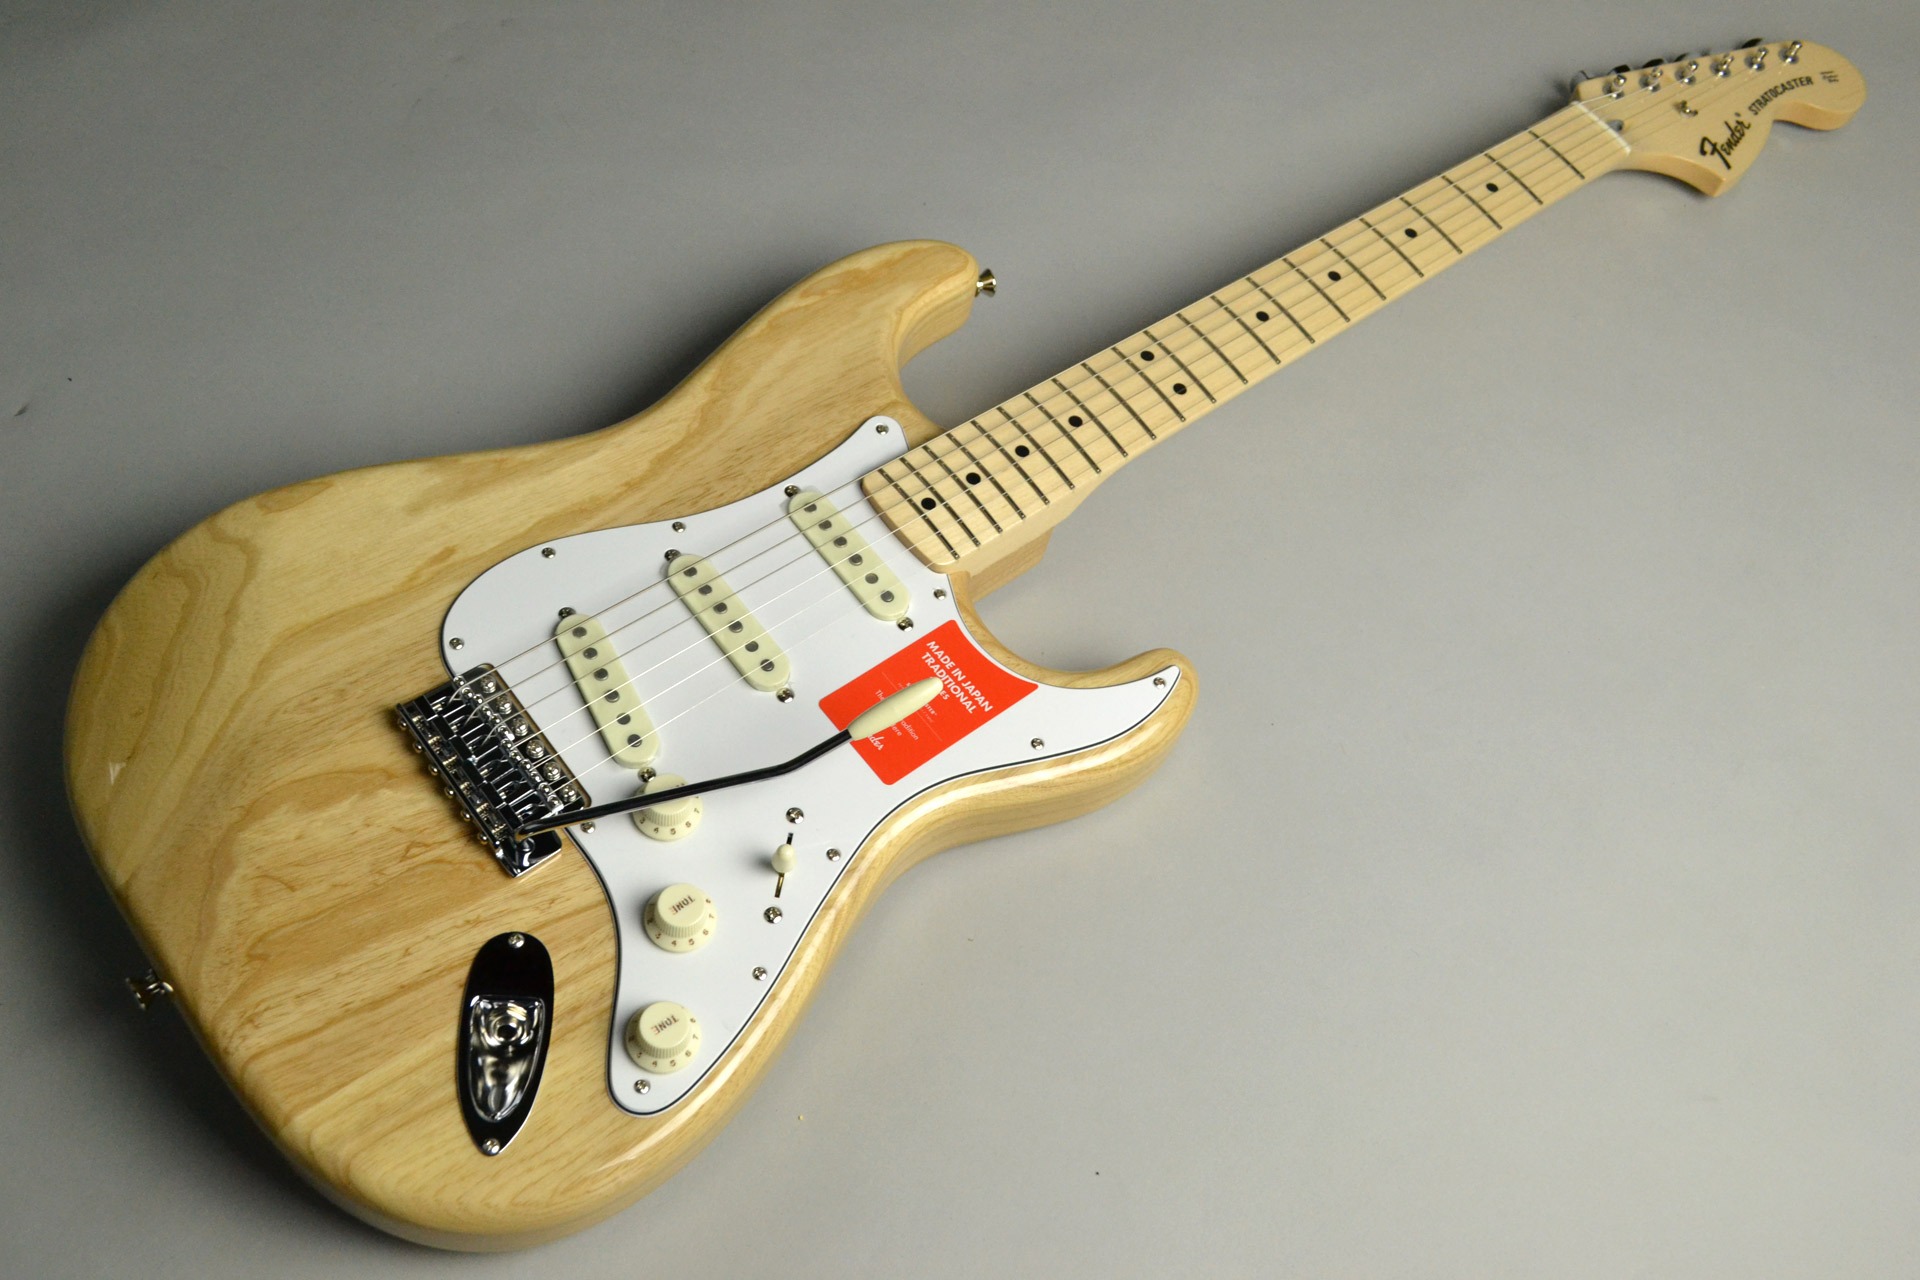 MADE IN JAPAN TRADITIONAL 70S STRATOCASTER Ash Natural